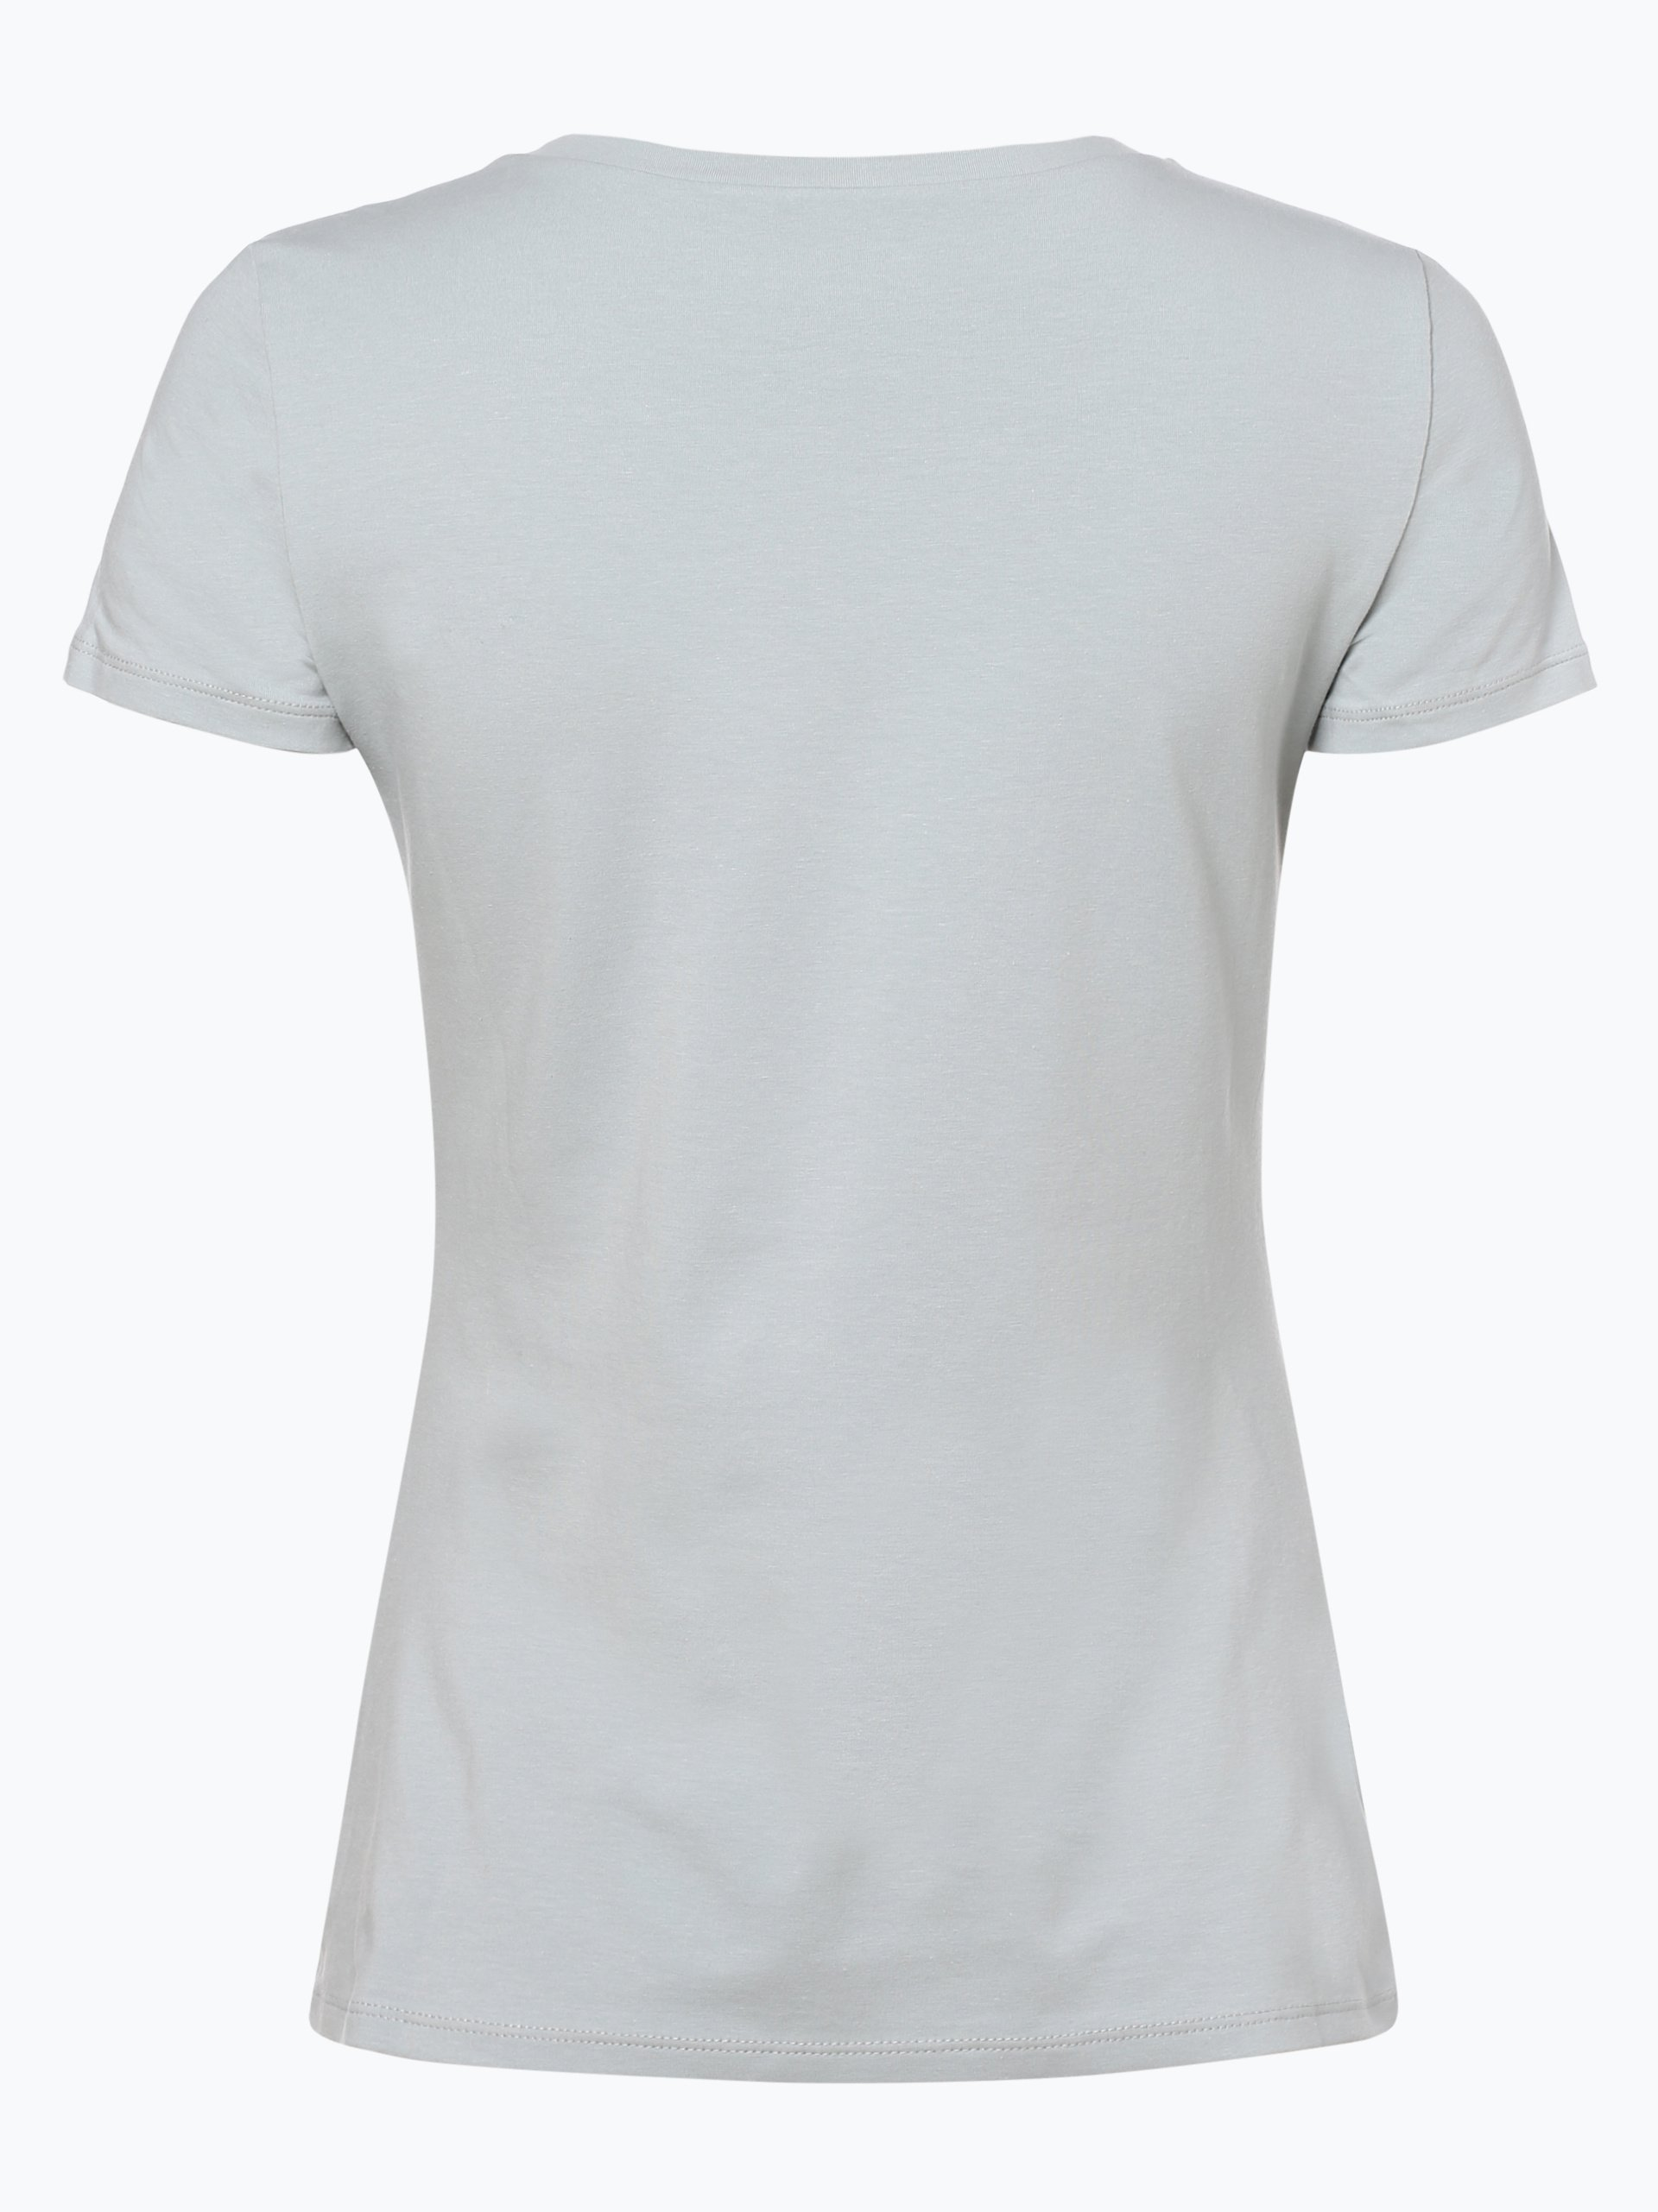 Weekend Max Mara Damen T-Shirt